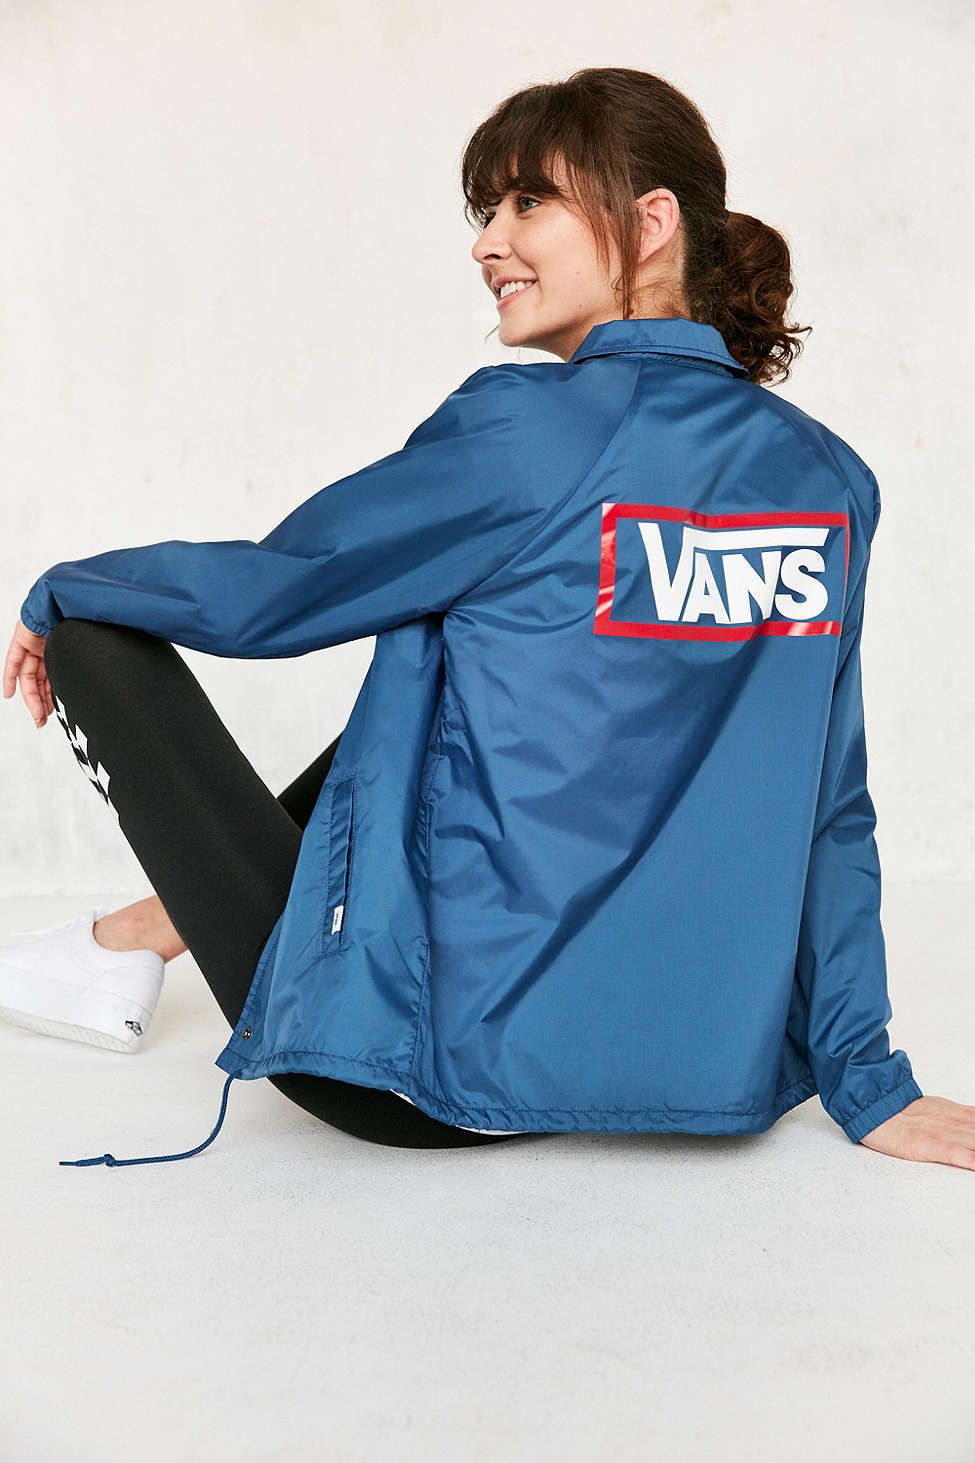 Vans Uo Blue Coach Jacket Uo Clothing Jackets Vans Jacket Vans